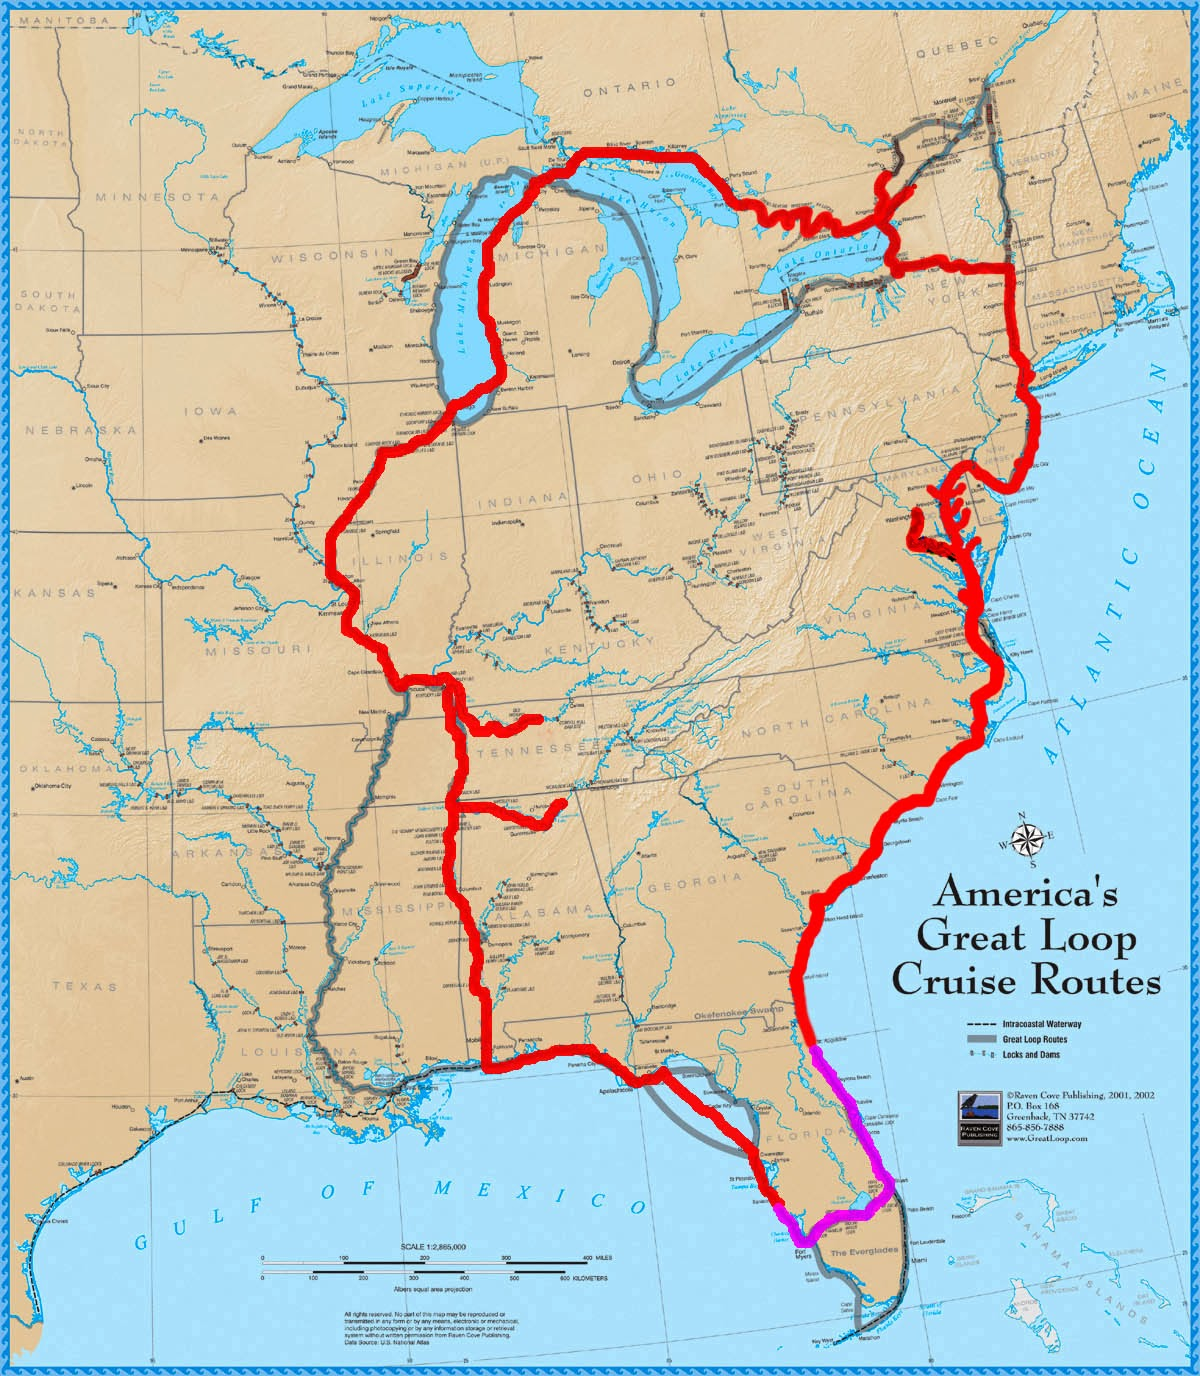 illinois road map with What Is This Great Loop on 33119b4 likewise Maps besides Attraction Review G36449 D2332328 Reviews King Spa Sauna Niles Illinois also Cartoons Donald Trumps Foreign Policy as well What Is This Great Loop.